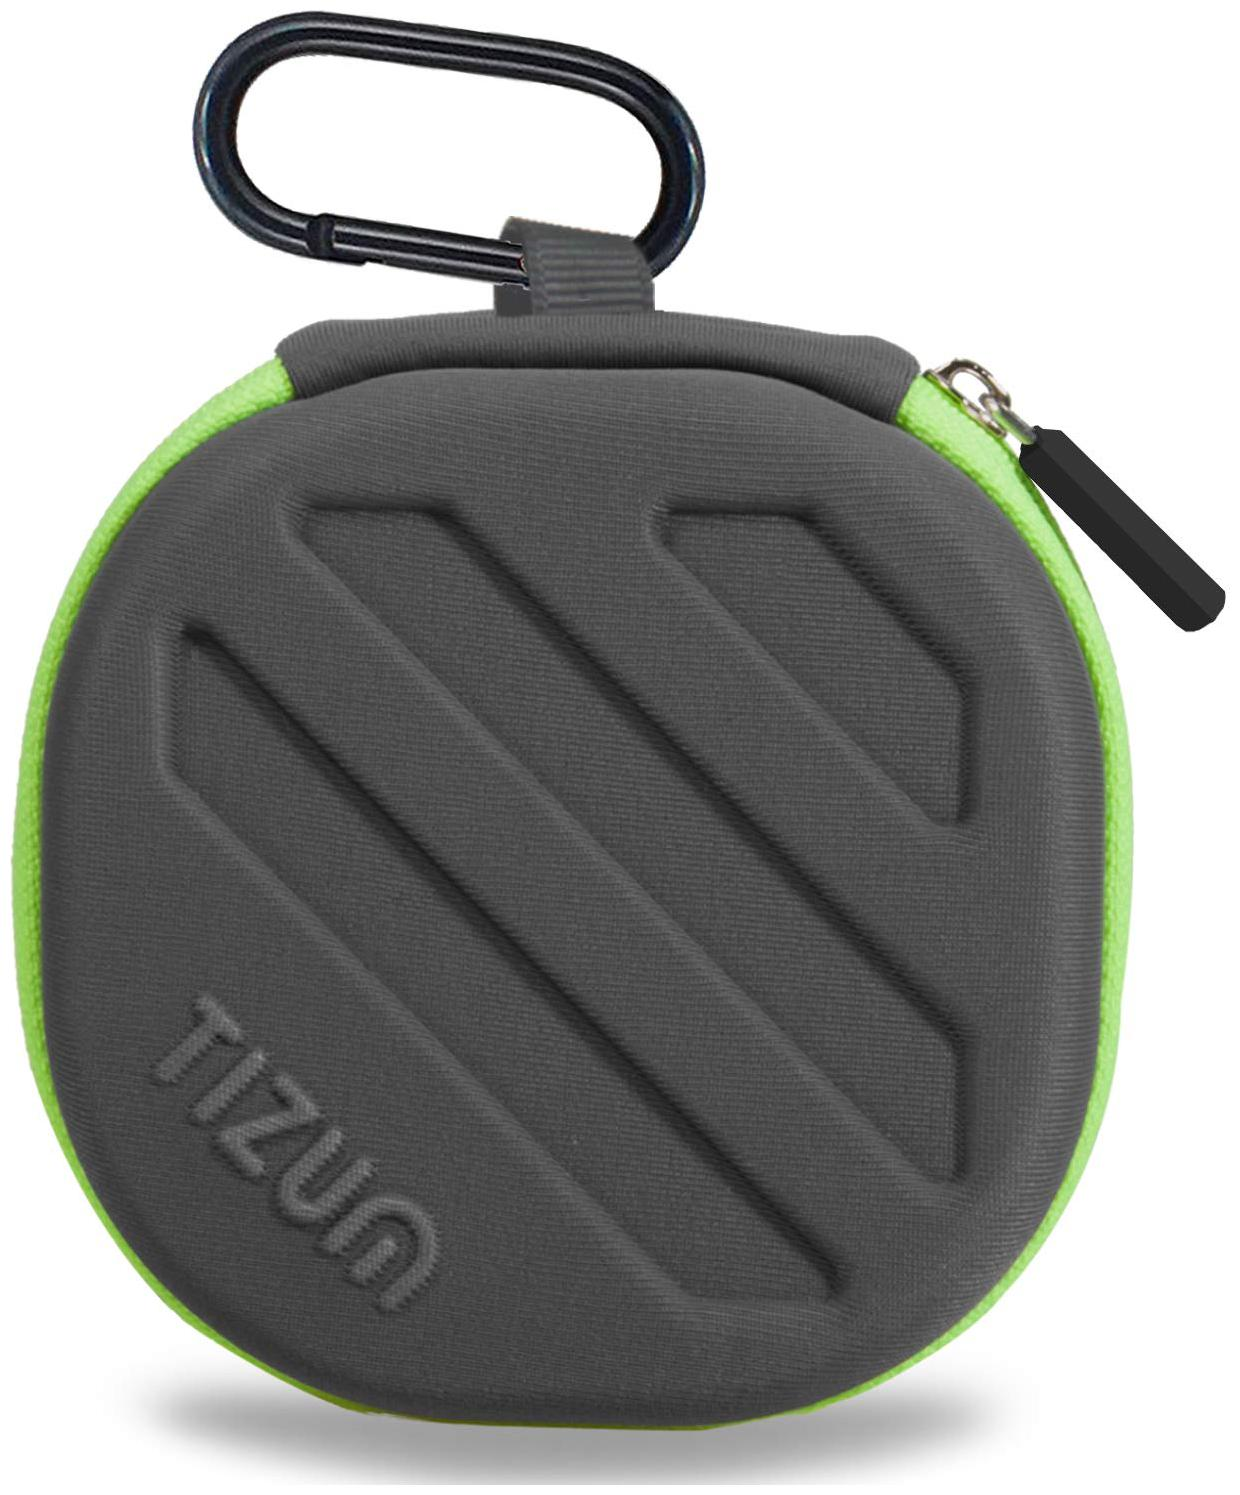 TIZUM Earphone Carrying Case   Multi Purpose Pocket Storage Case for Headphone, Pen Drives, Memory Card, Data Cable  Grey  by I Stuff 365